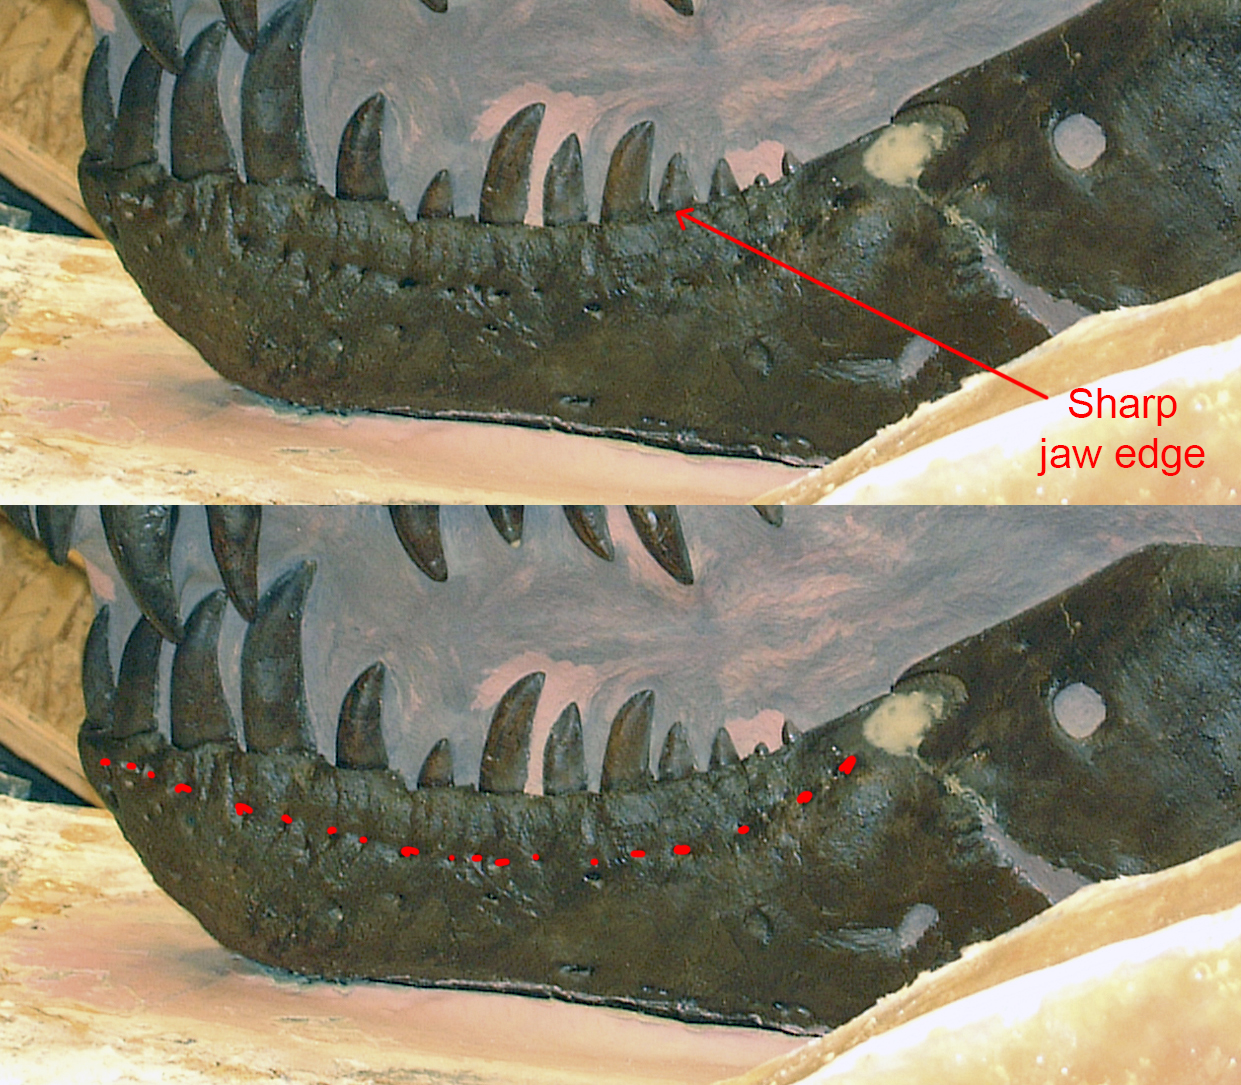 MOR 980 mandible - foramina highlighted in red on the bottom image